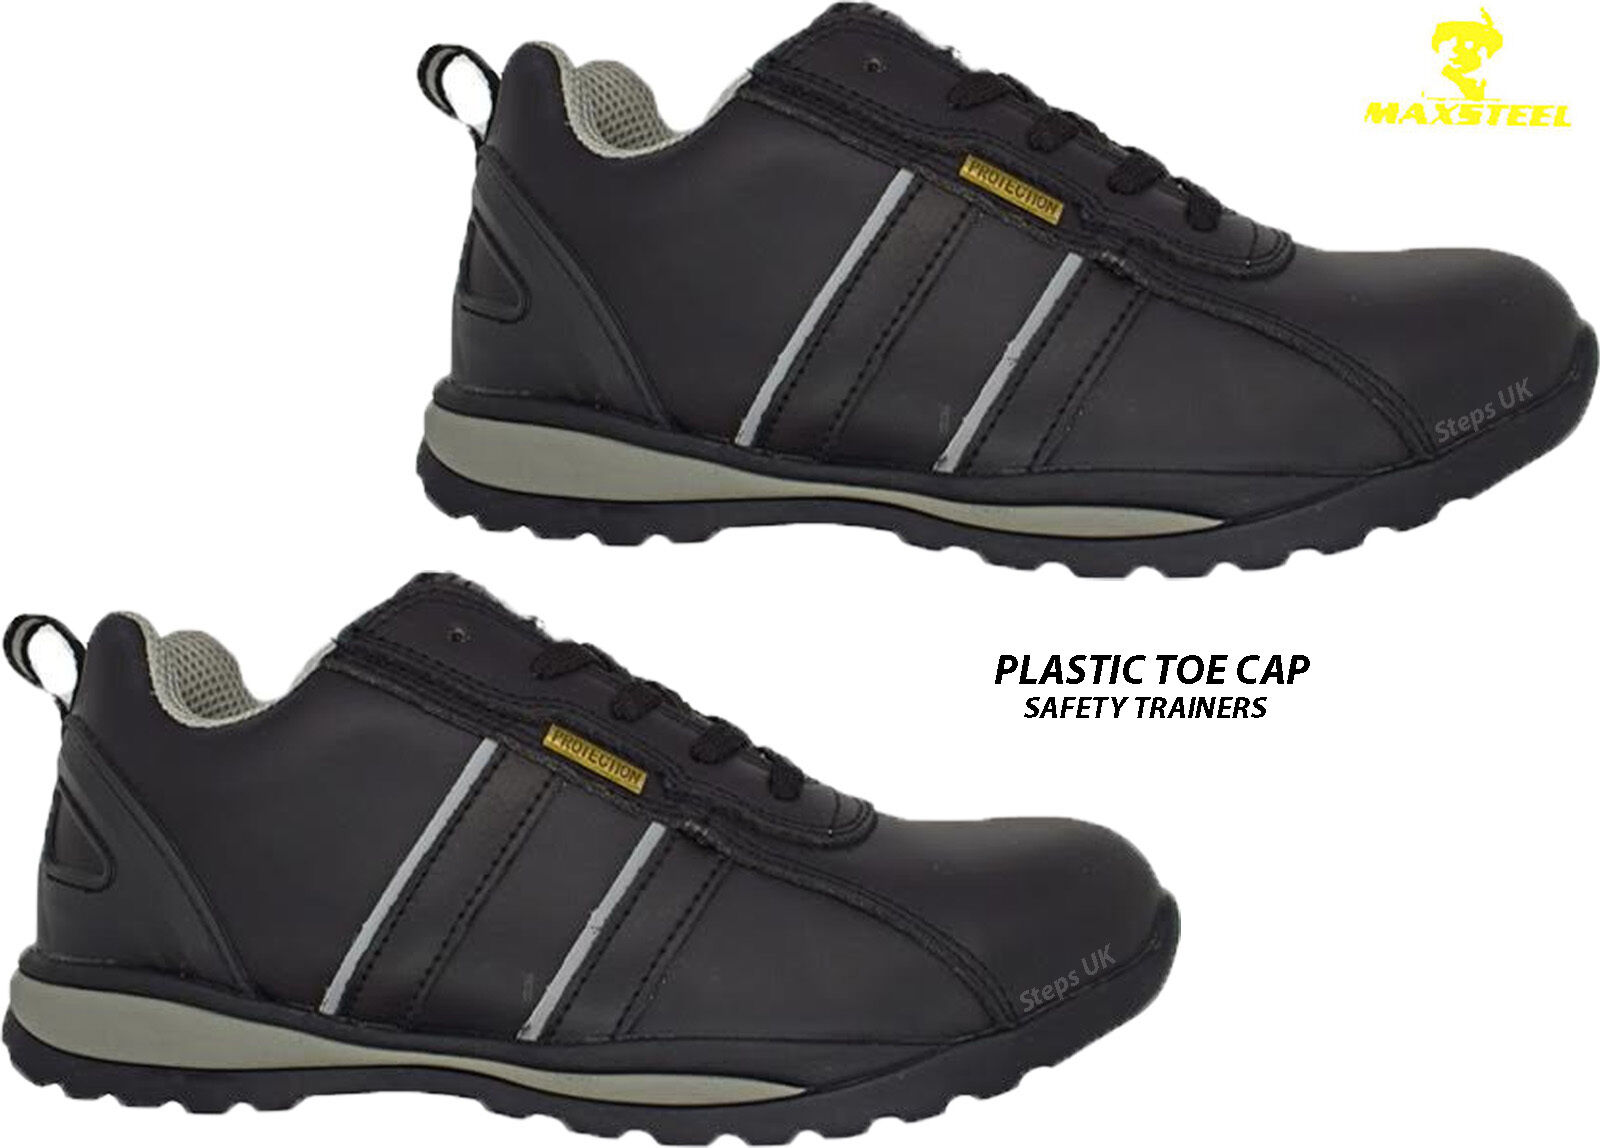 MENS LIGHTWEIGHT LEATHER COMPOSITE PLASTIC TOE CAP SAFTEY TRAINERS WORK BOOTS SZ